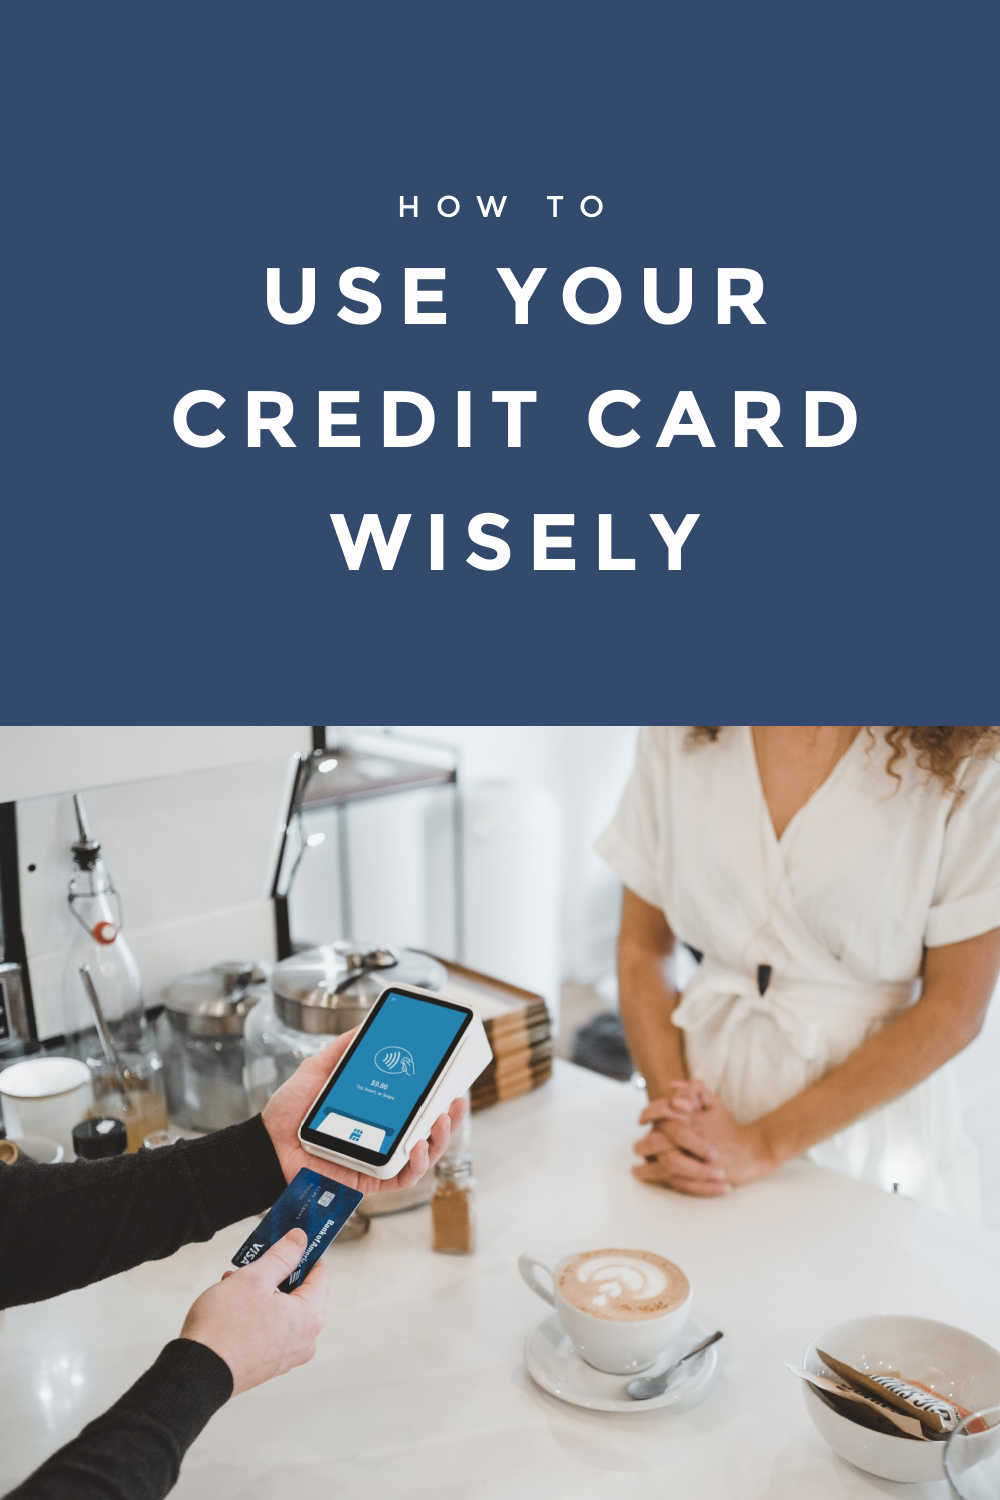 USE YOUR CREDIT CARD WISELY